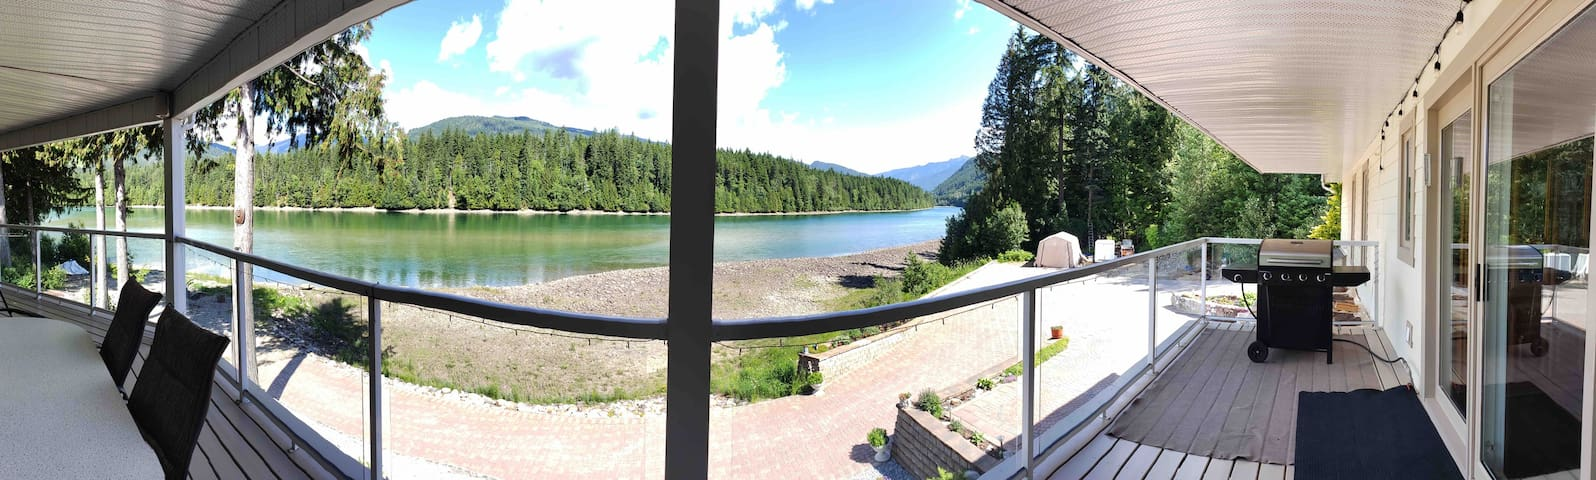 Revelstoke Riverview Retreat  home away from home!